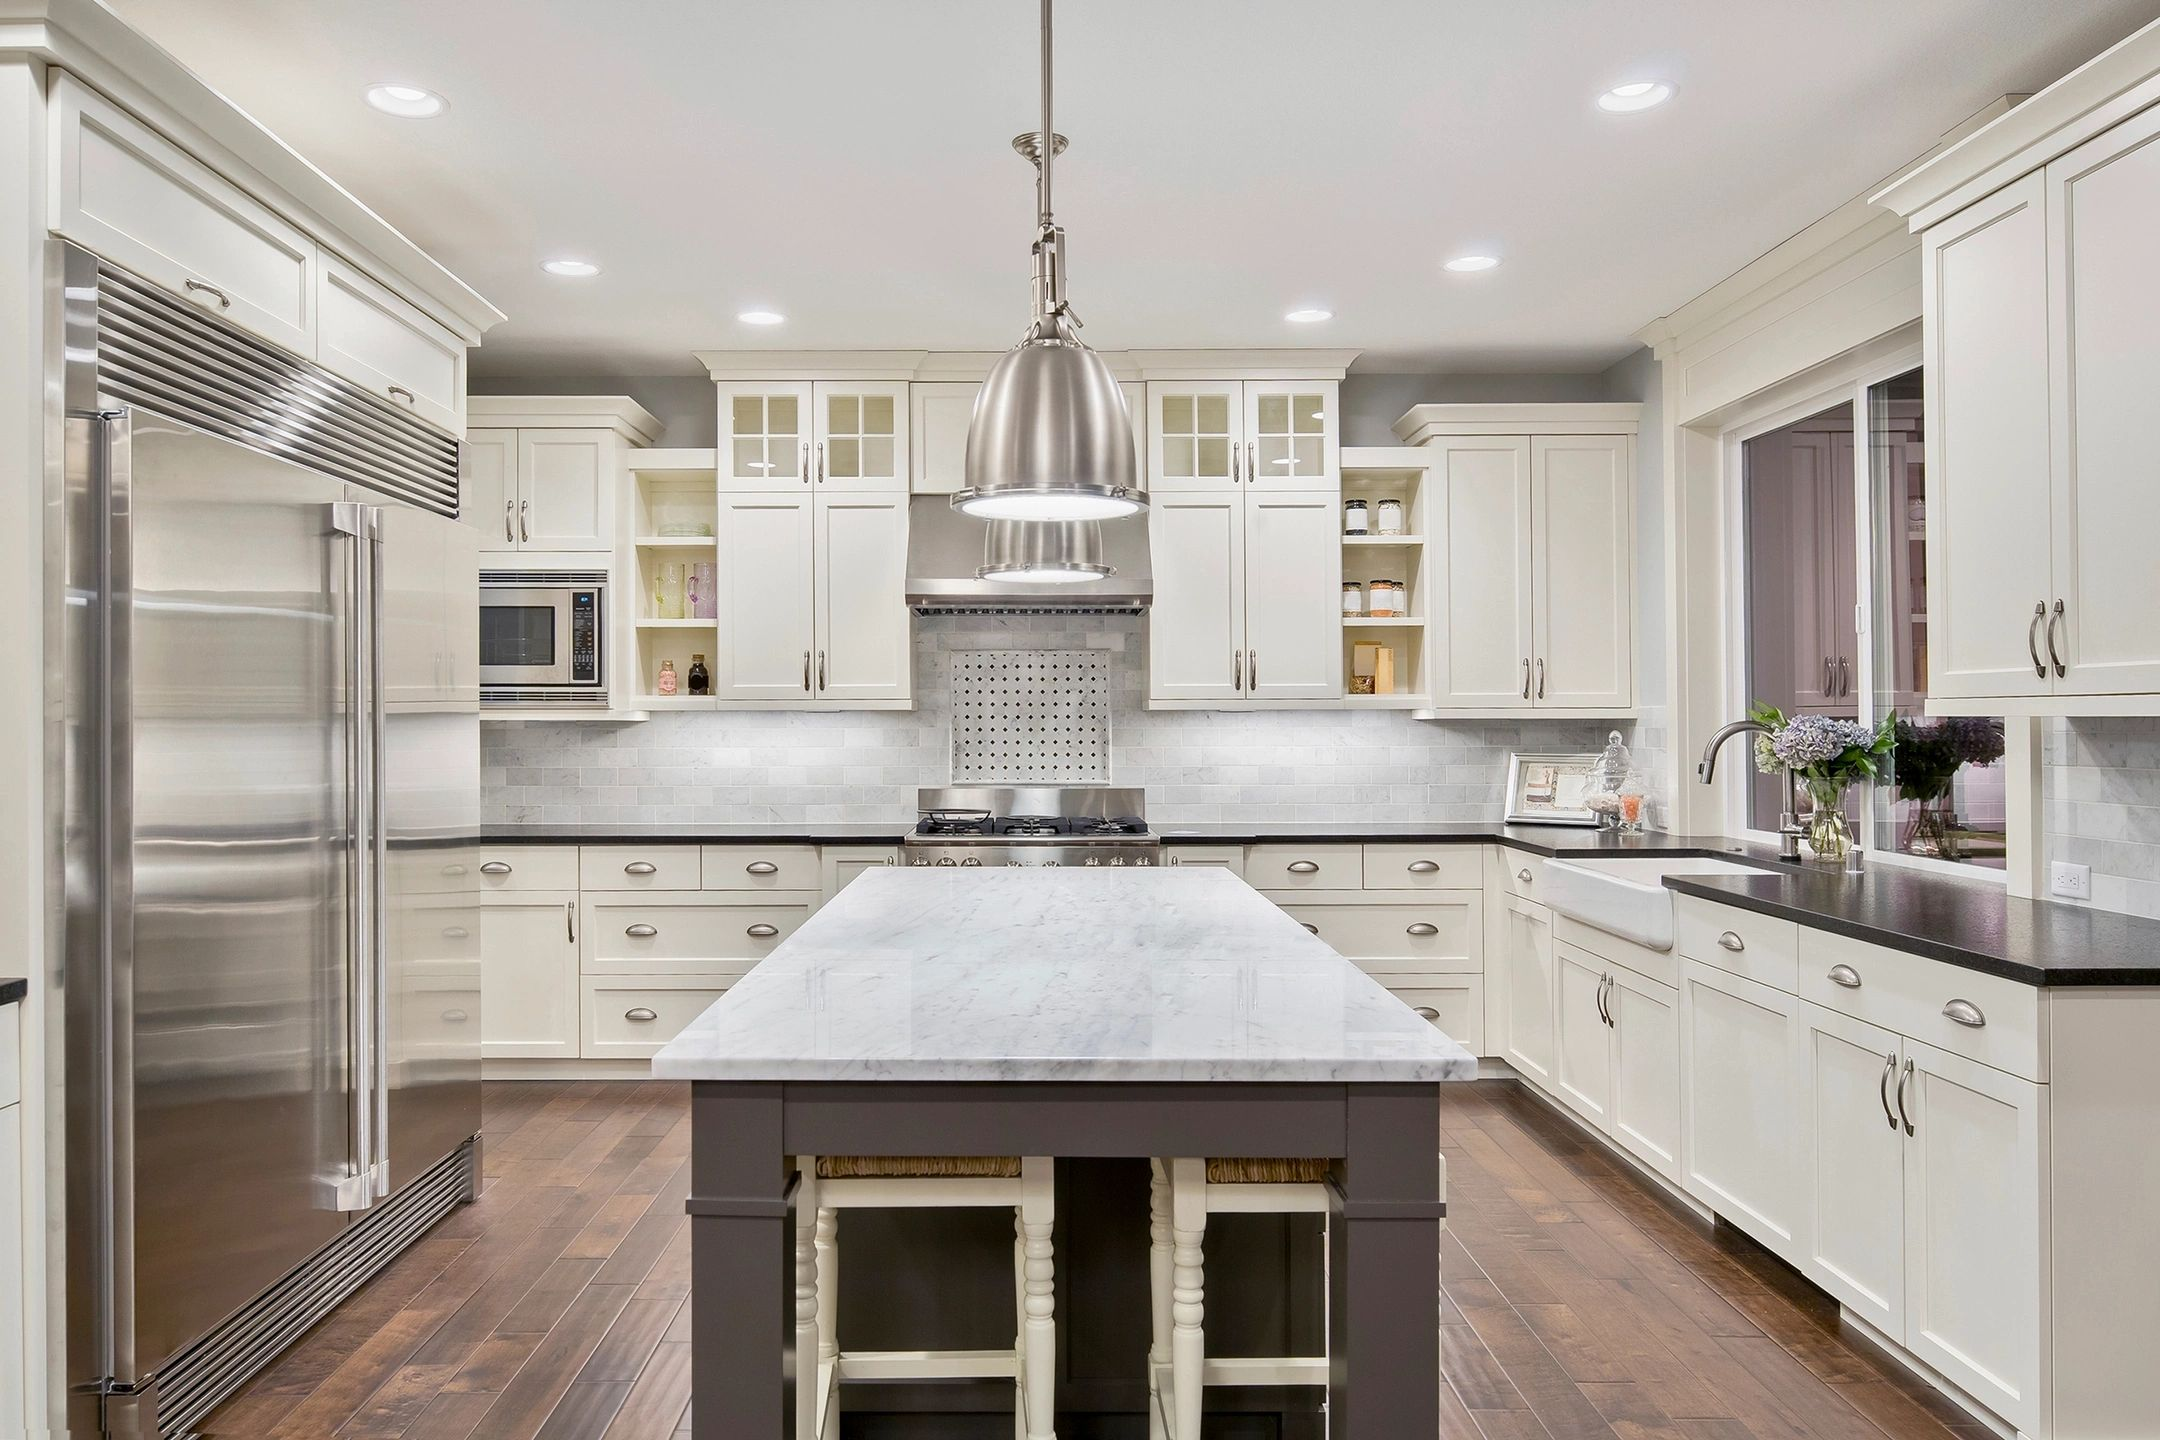 amazing custom kitchen  by pacific save